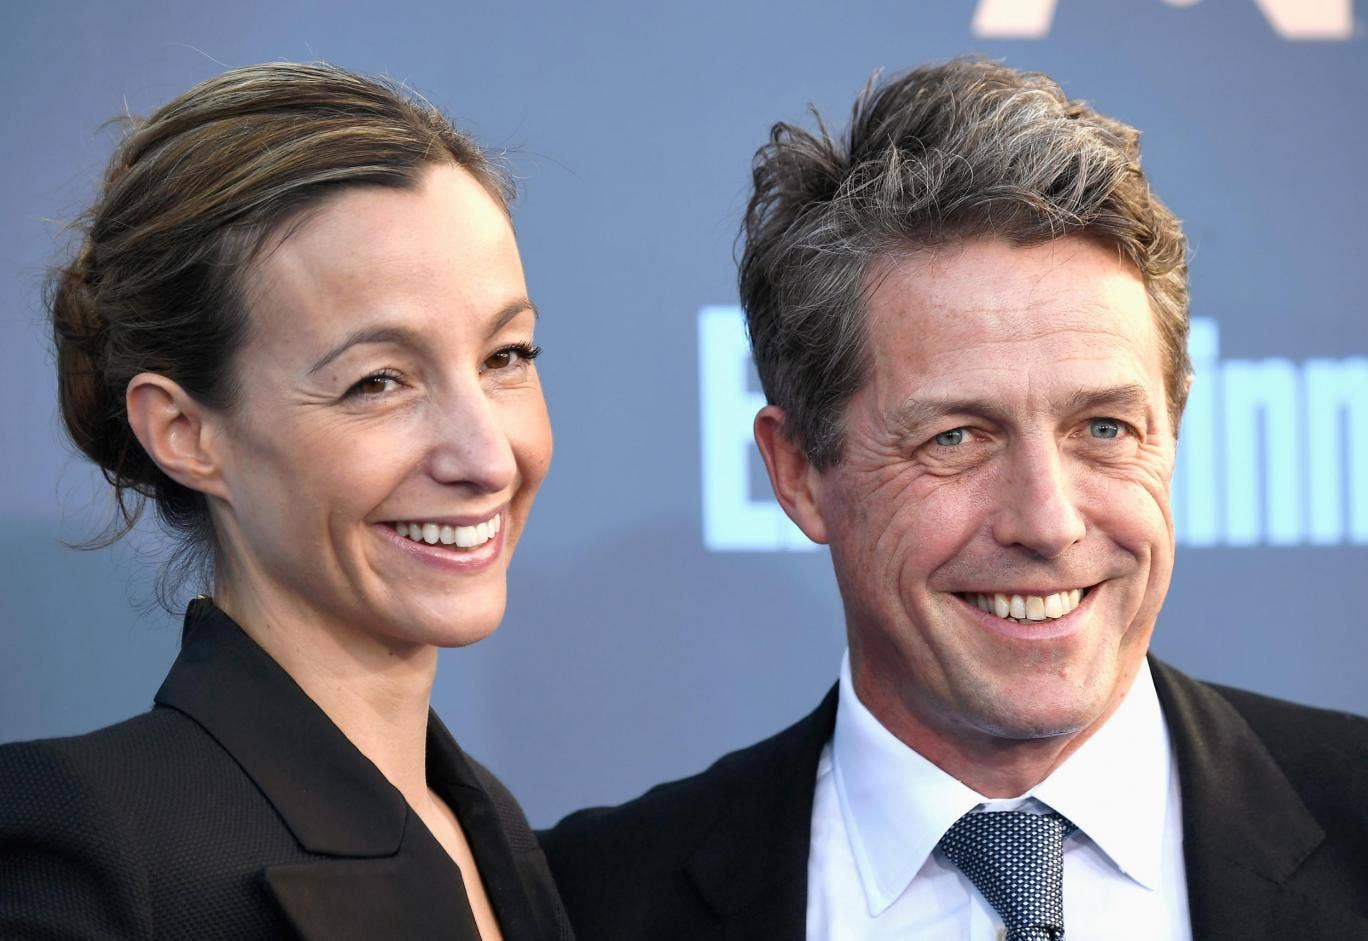 https://static.independent.co.uk/s3fs-public/styles/story_large/public/thumbnails/image/2018/05/22/08/hugh-grant-anna-eberstein.jpg